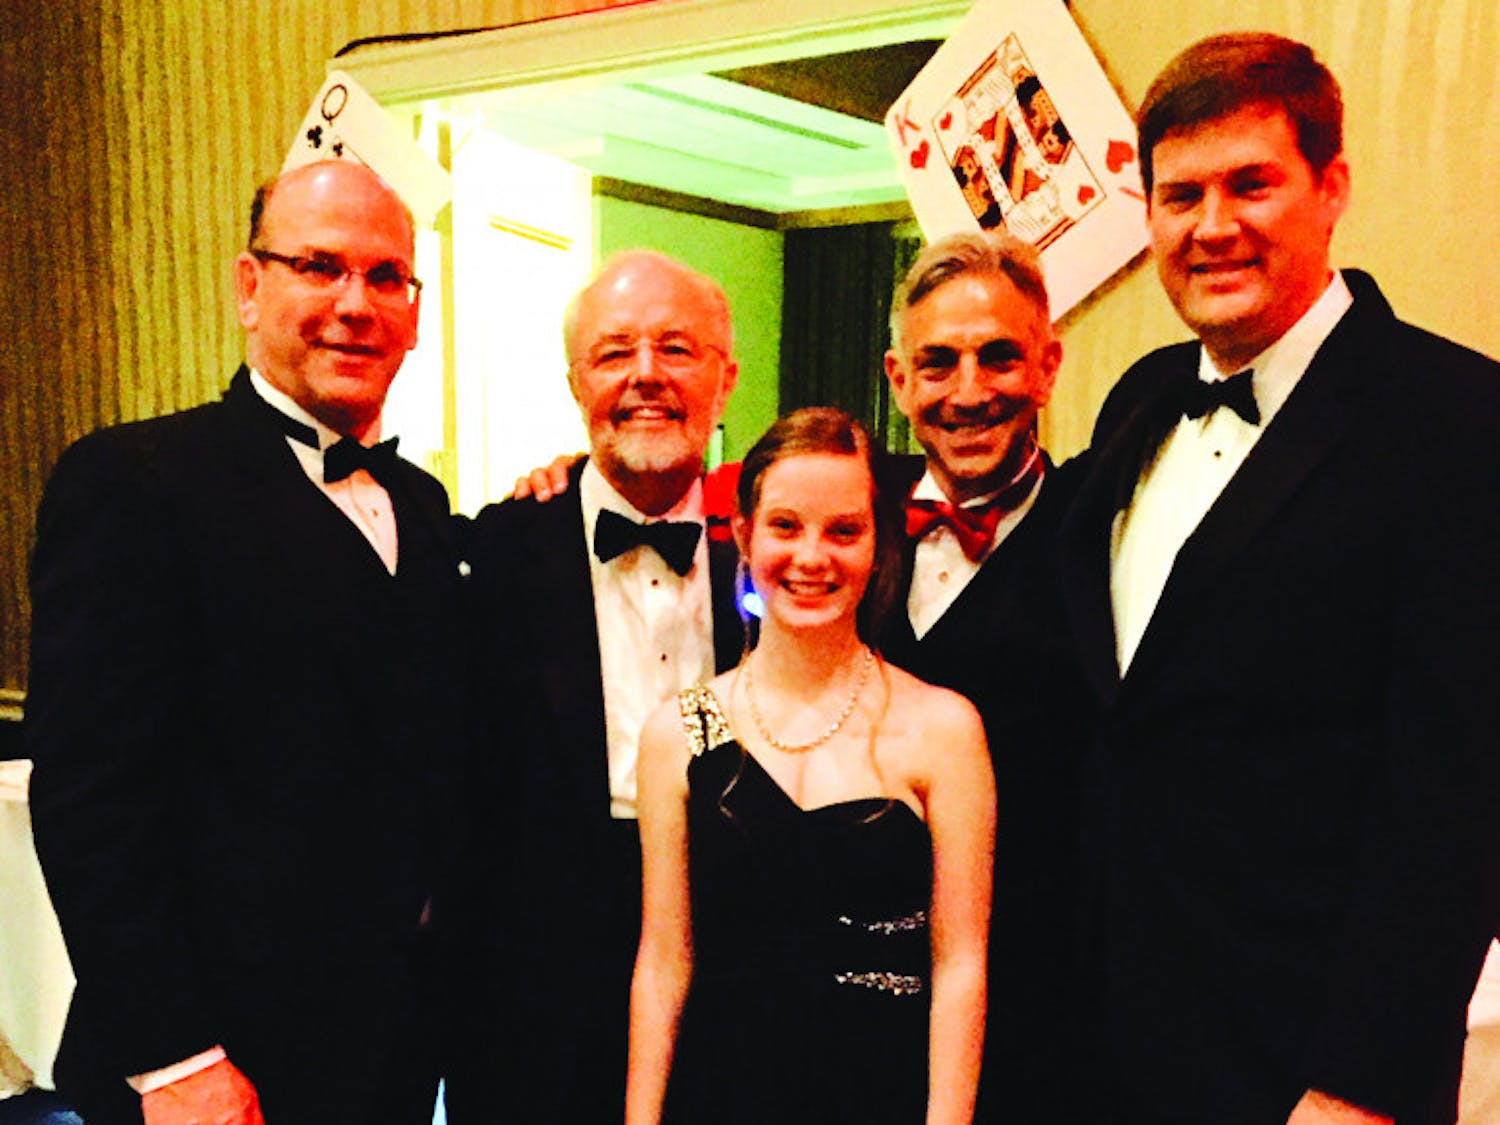 Dr. Biagio Pietra, Dr. Jay Fricker, Dr. Mark Bleiweis and Dr. James Fudge pose with Cristina Cinca, who received a heart transplant from UF Health Shands Hospital in September 2014, at the American Heart Association Heart Ball on Feb. 14, 2016. Bleiweis performed Cinca's surgery, and Fricker was her cardiologist.